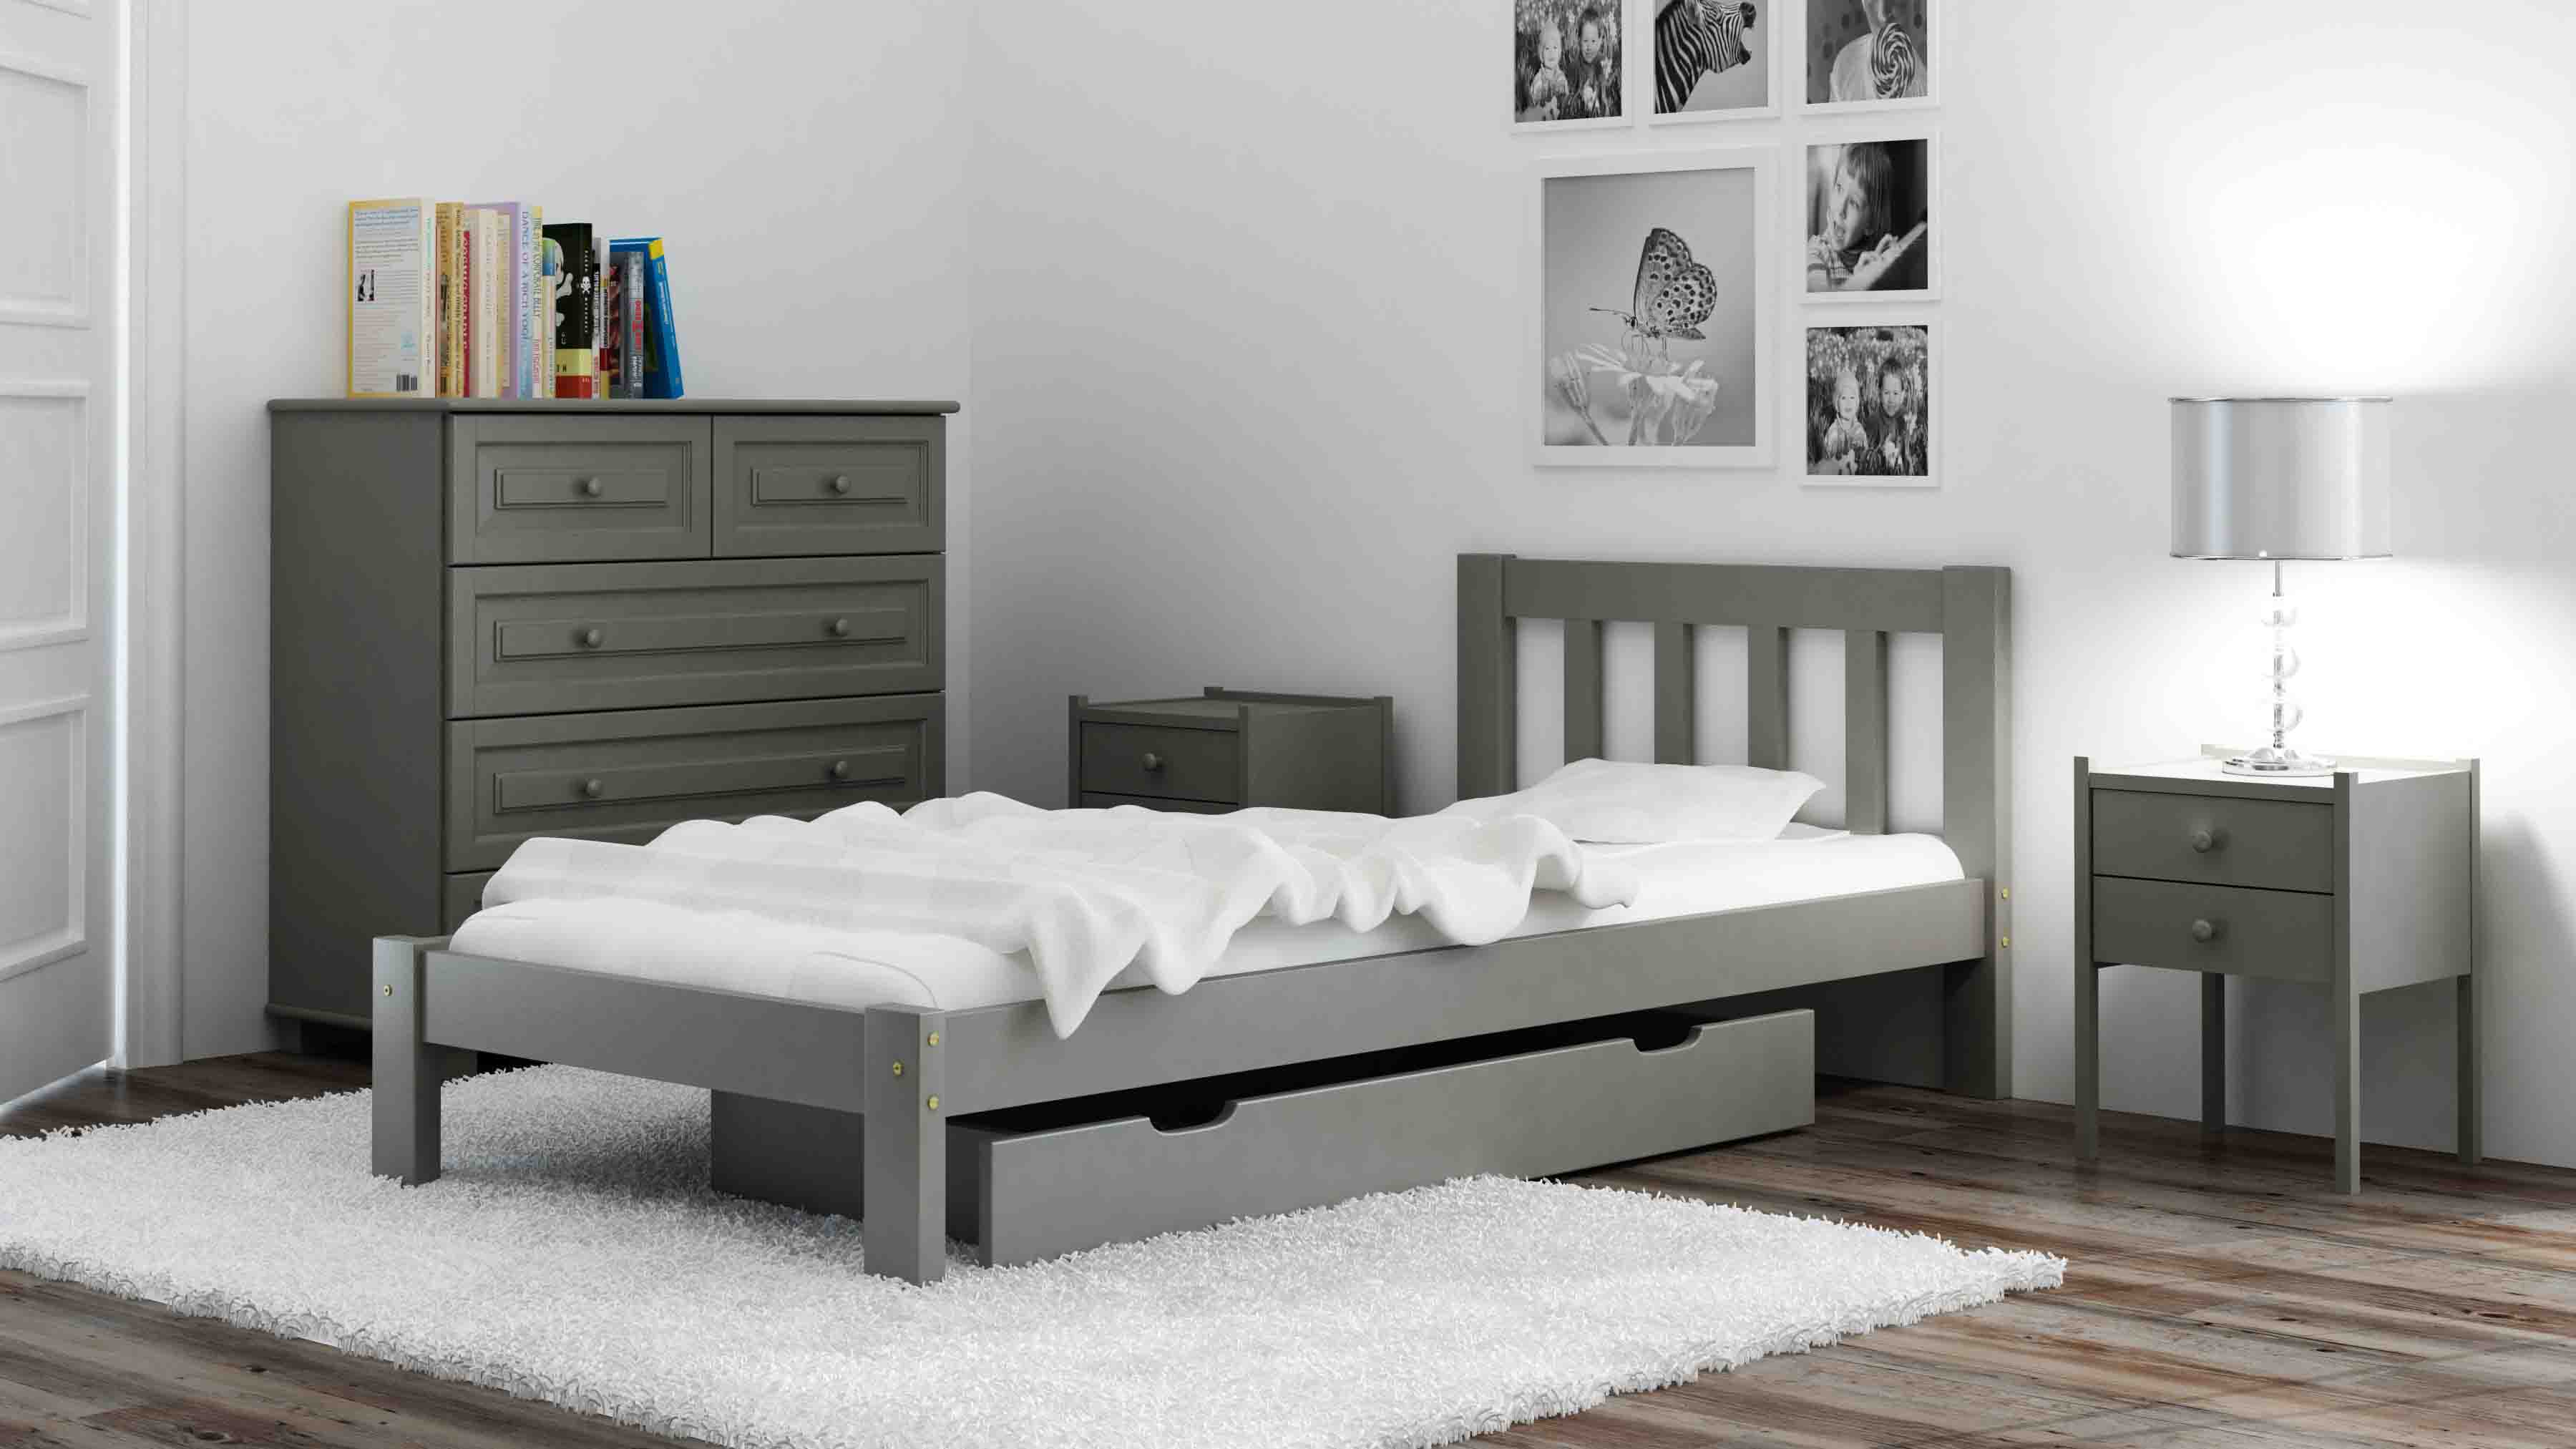 bett massivholzbett lattenrost 90x200 ehebett jugendbett holzbett in 2 farben ebay. Black Bedroom Furniture Sets. Home Design Ideas